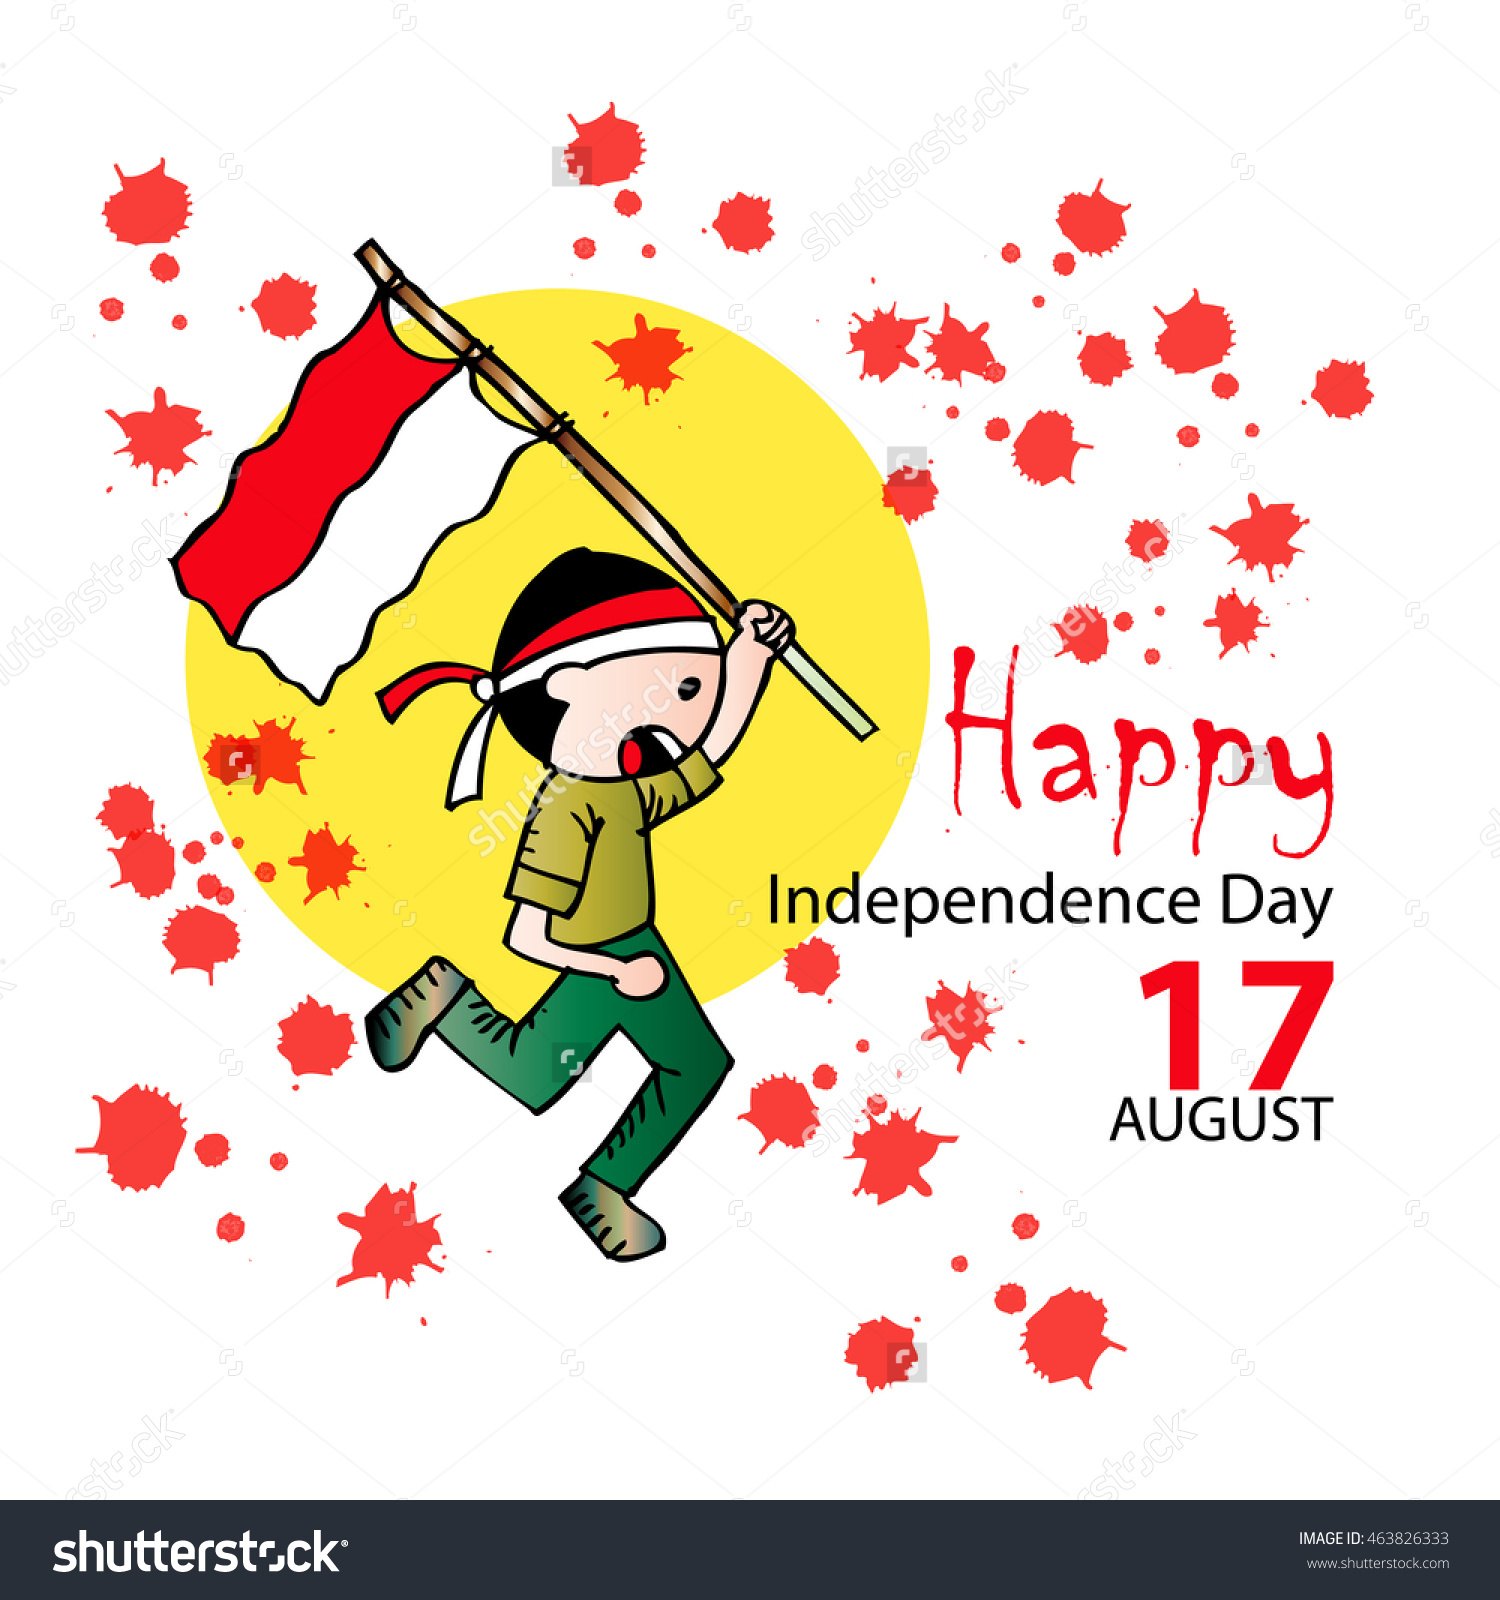 Indonesia independence day clipart graphic transparent Happy Independence Day Indonesia Stock Vector 463826333 - Shutterstock graphic transparent